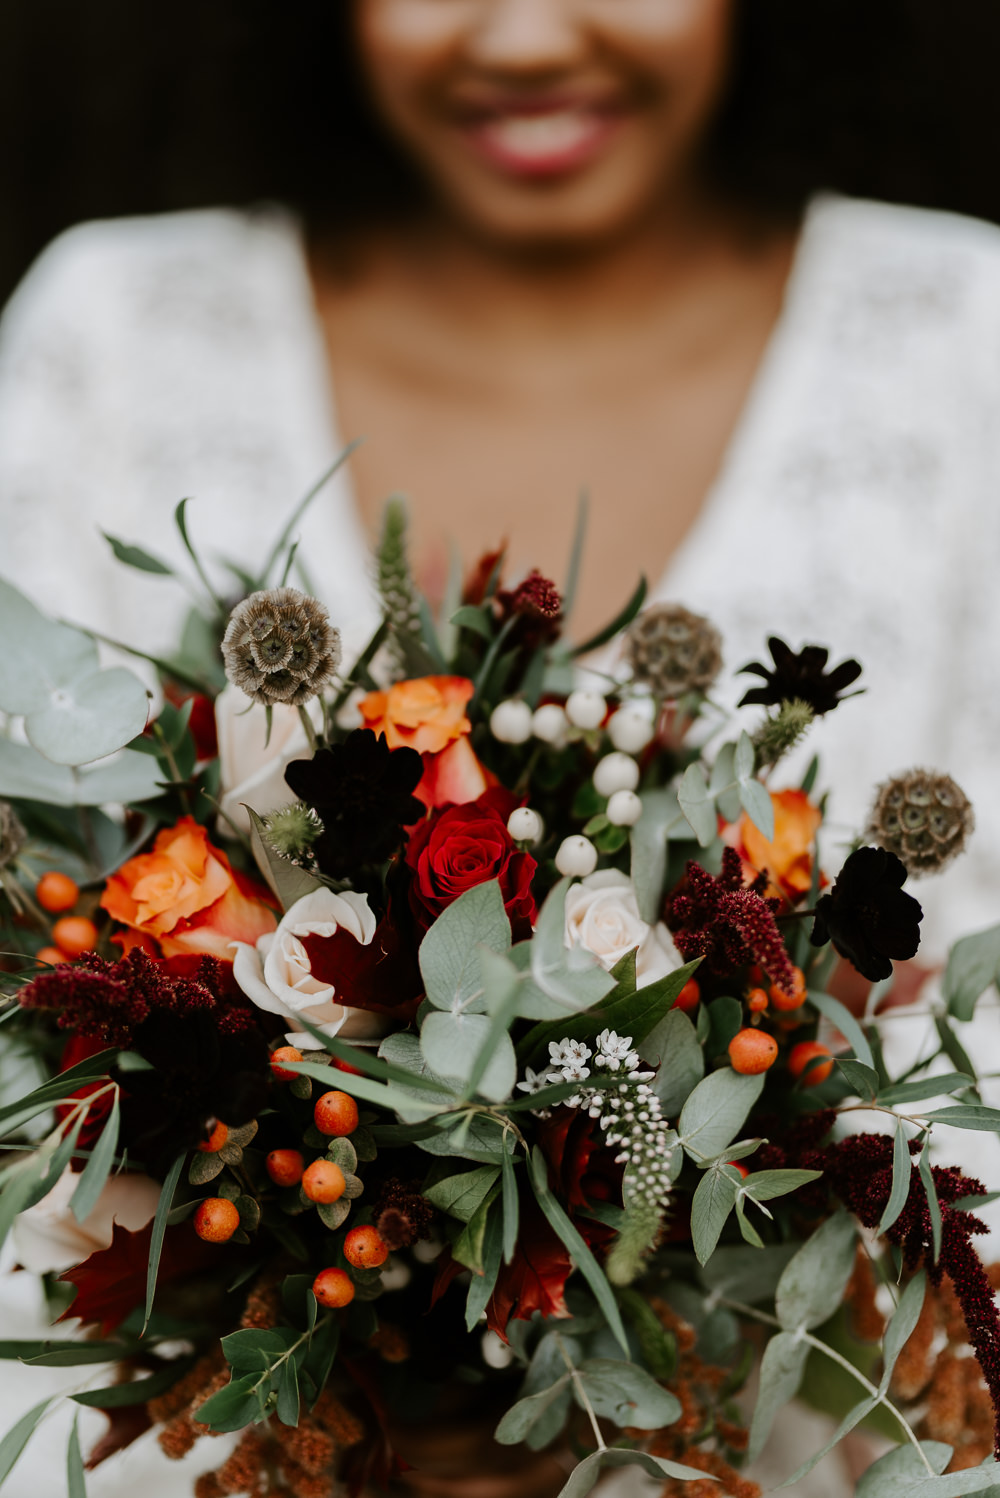 Bouquet Flowers Bride Bridal Eucalyptus Berry Burgundy Orange Autumn Wedding Colours Laura Williams Photography